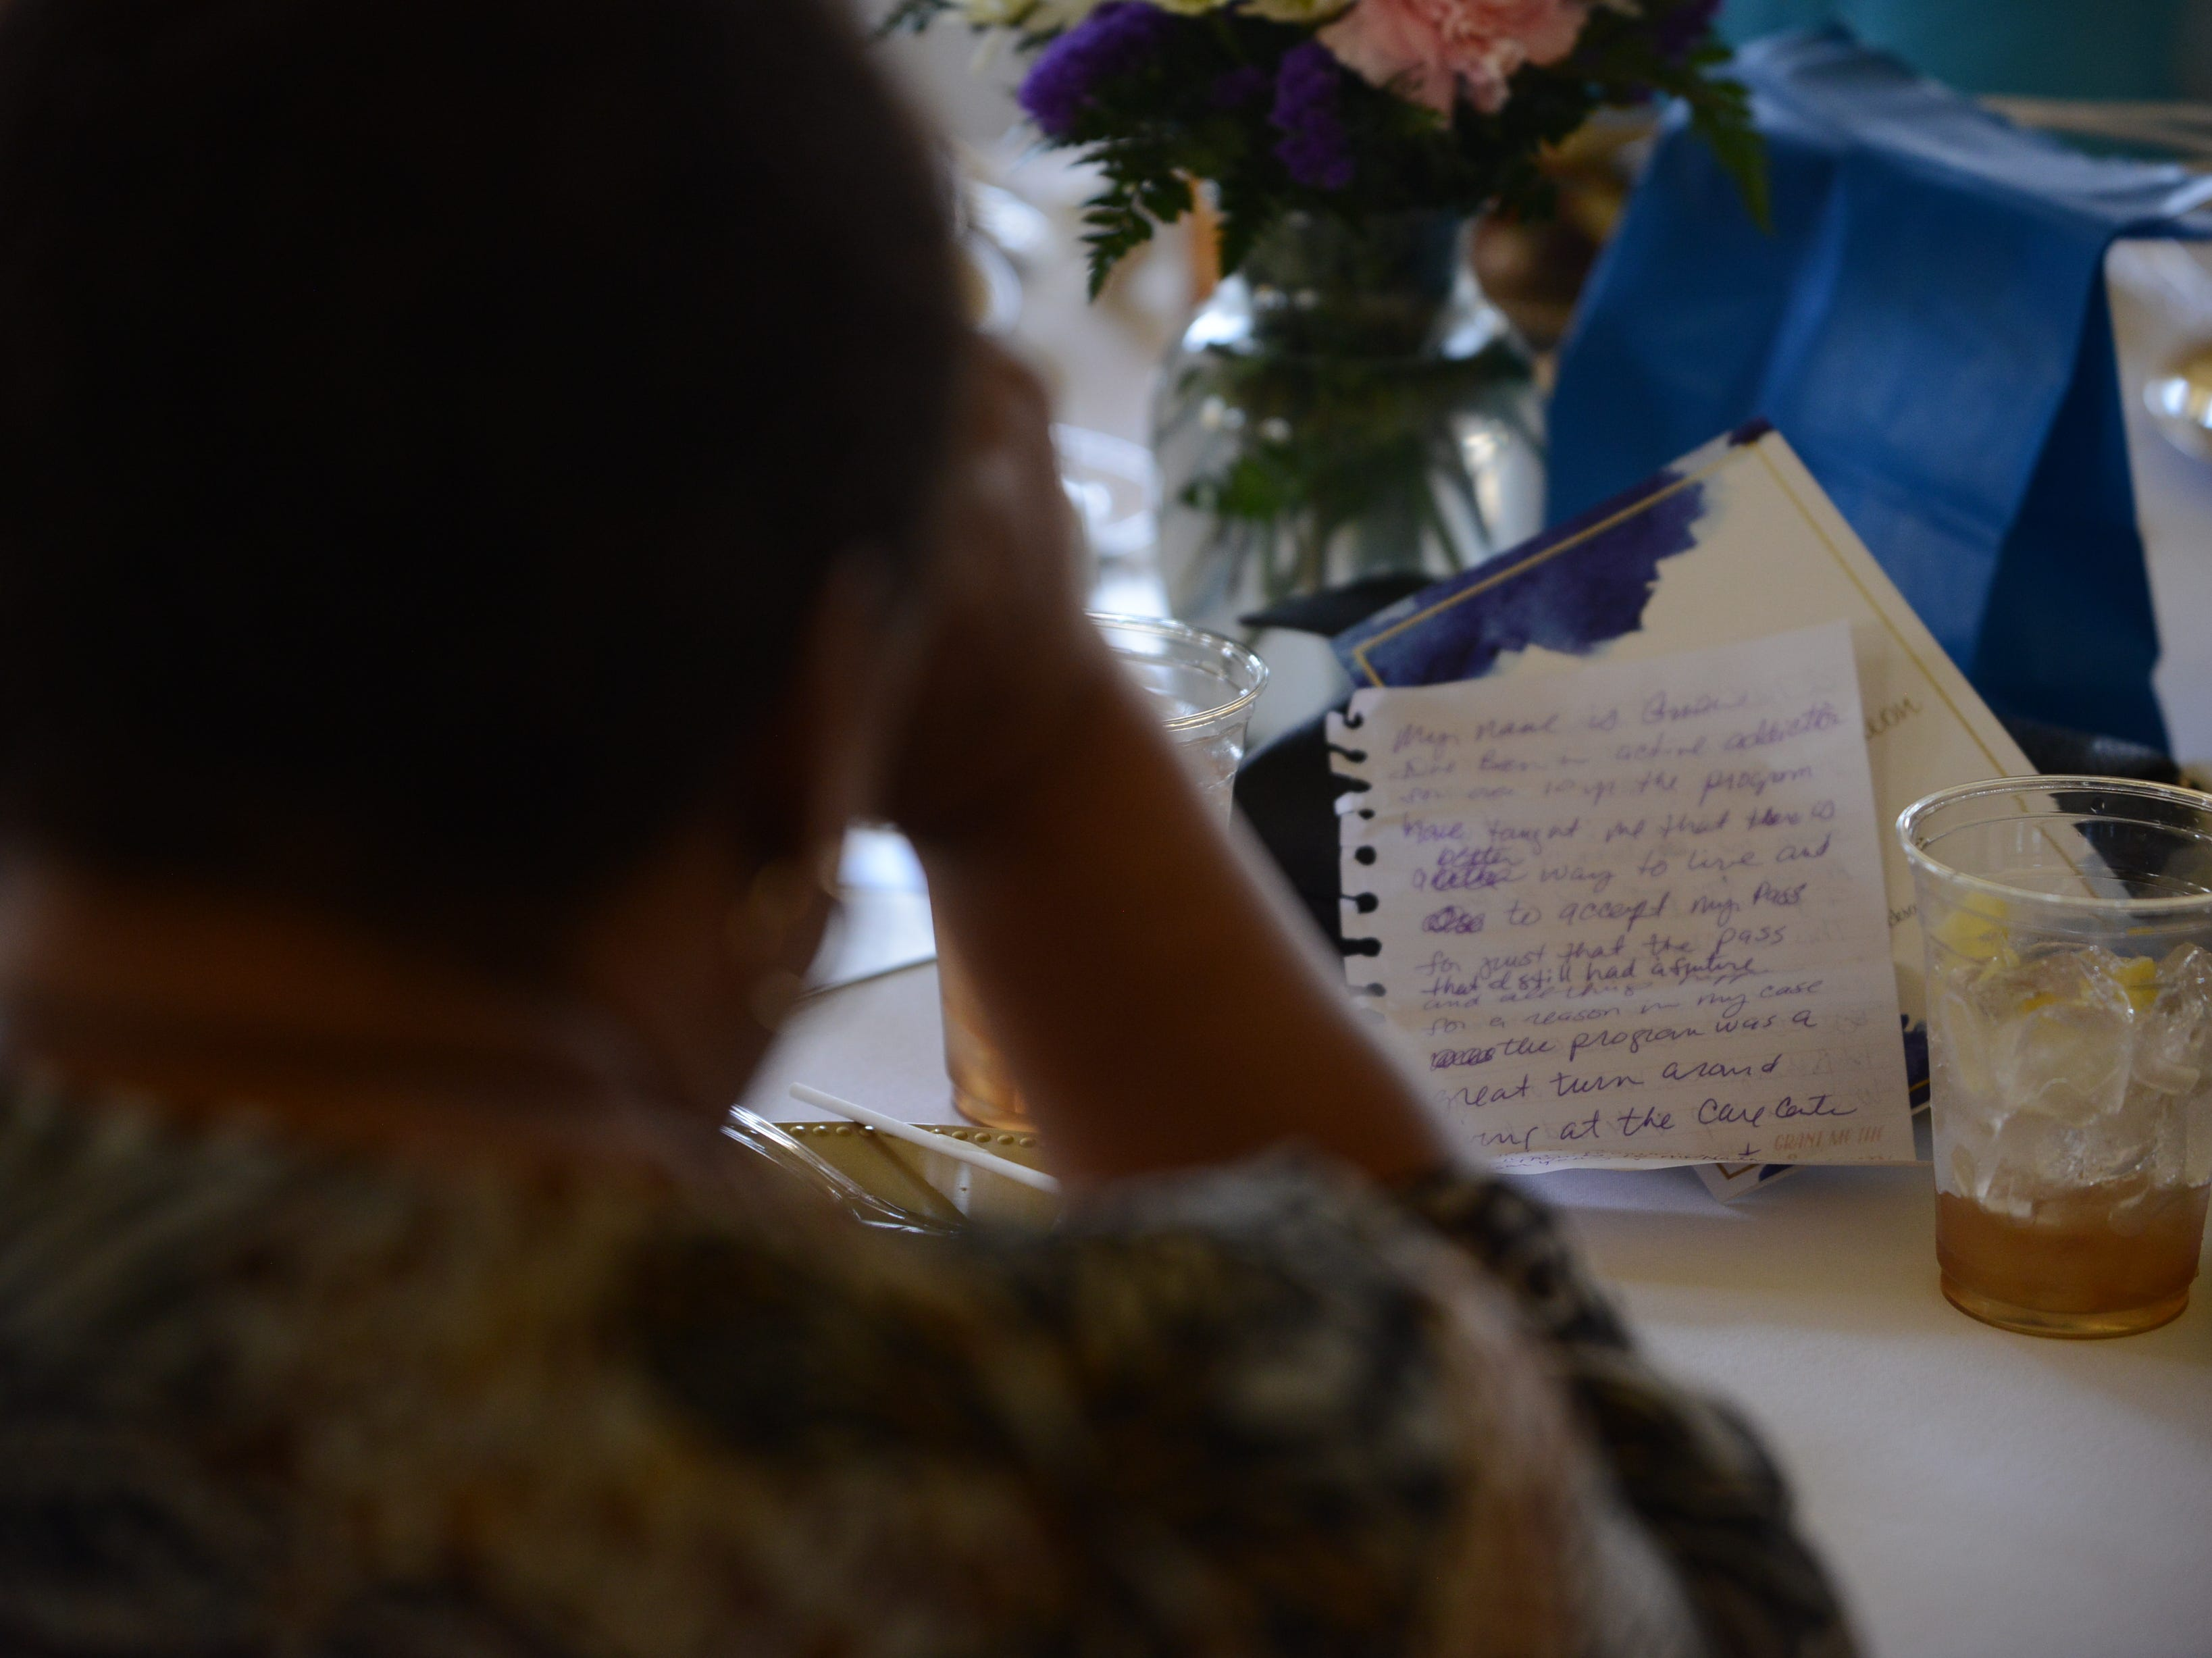 Carma Northern bows her head in prayer at the at the Jackson Recovery Court graduation luncheon at the New Southern Hotel on Wednesday, April 3. Northern came to support friend and program graduate Gwen Woods. Wood's notes for her speech rest on the table in front of Northern.